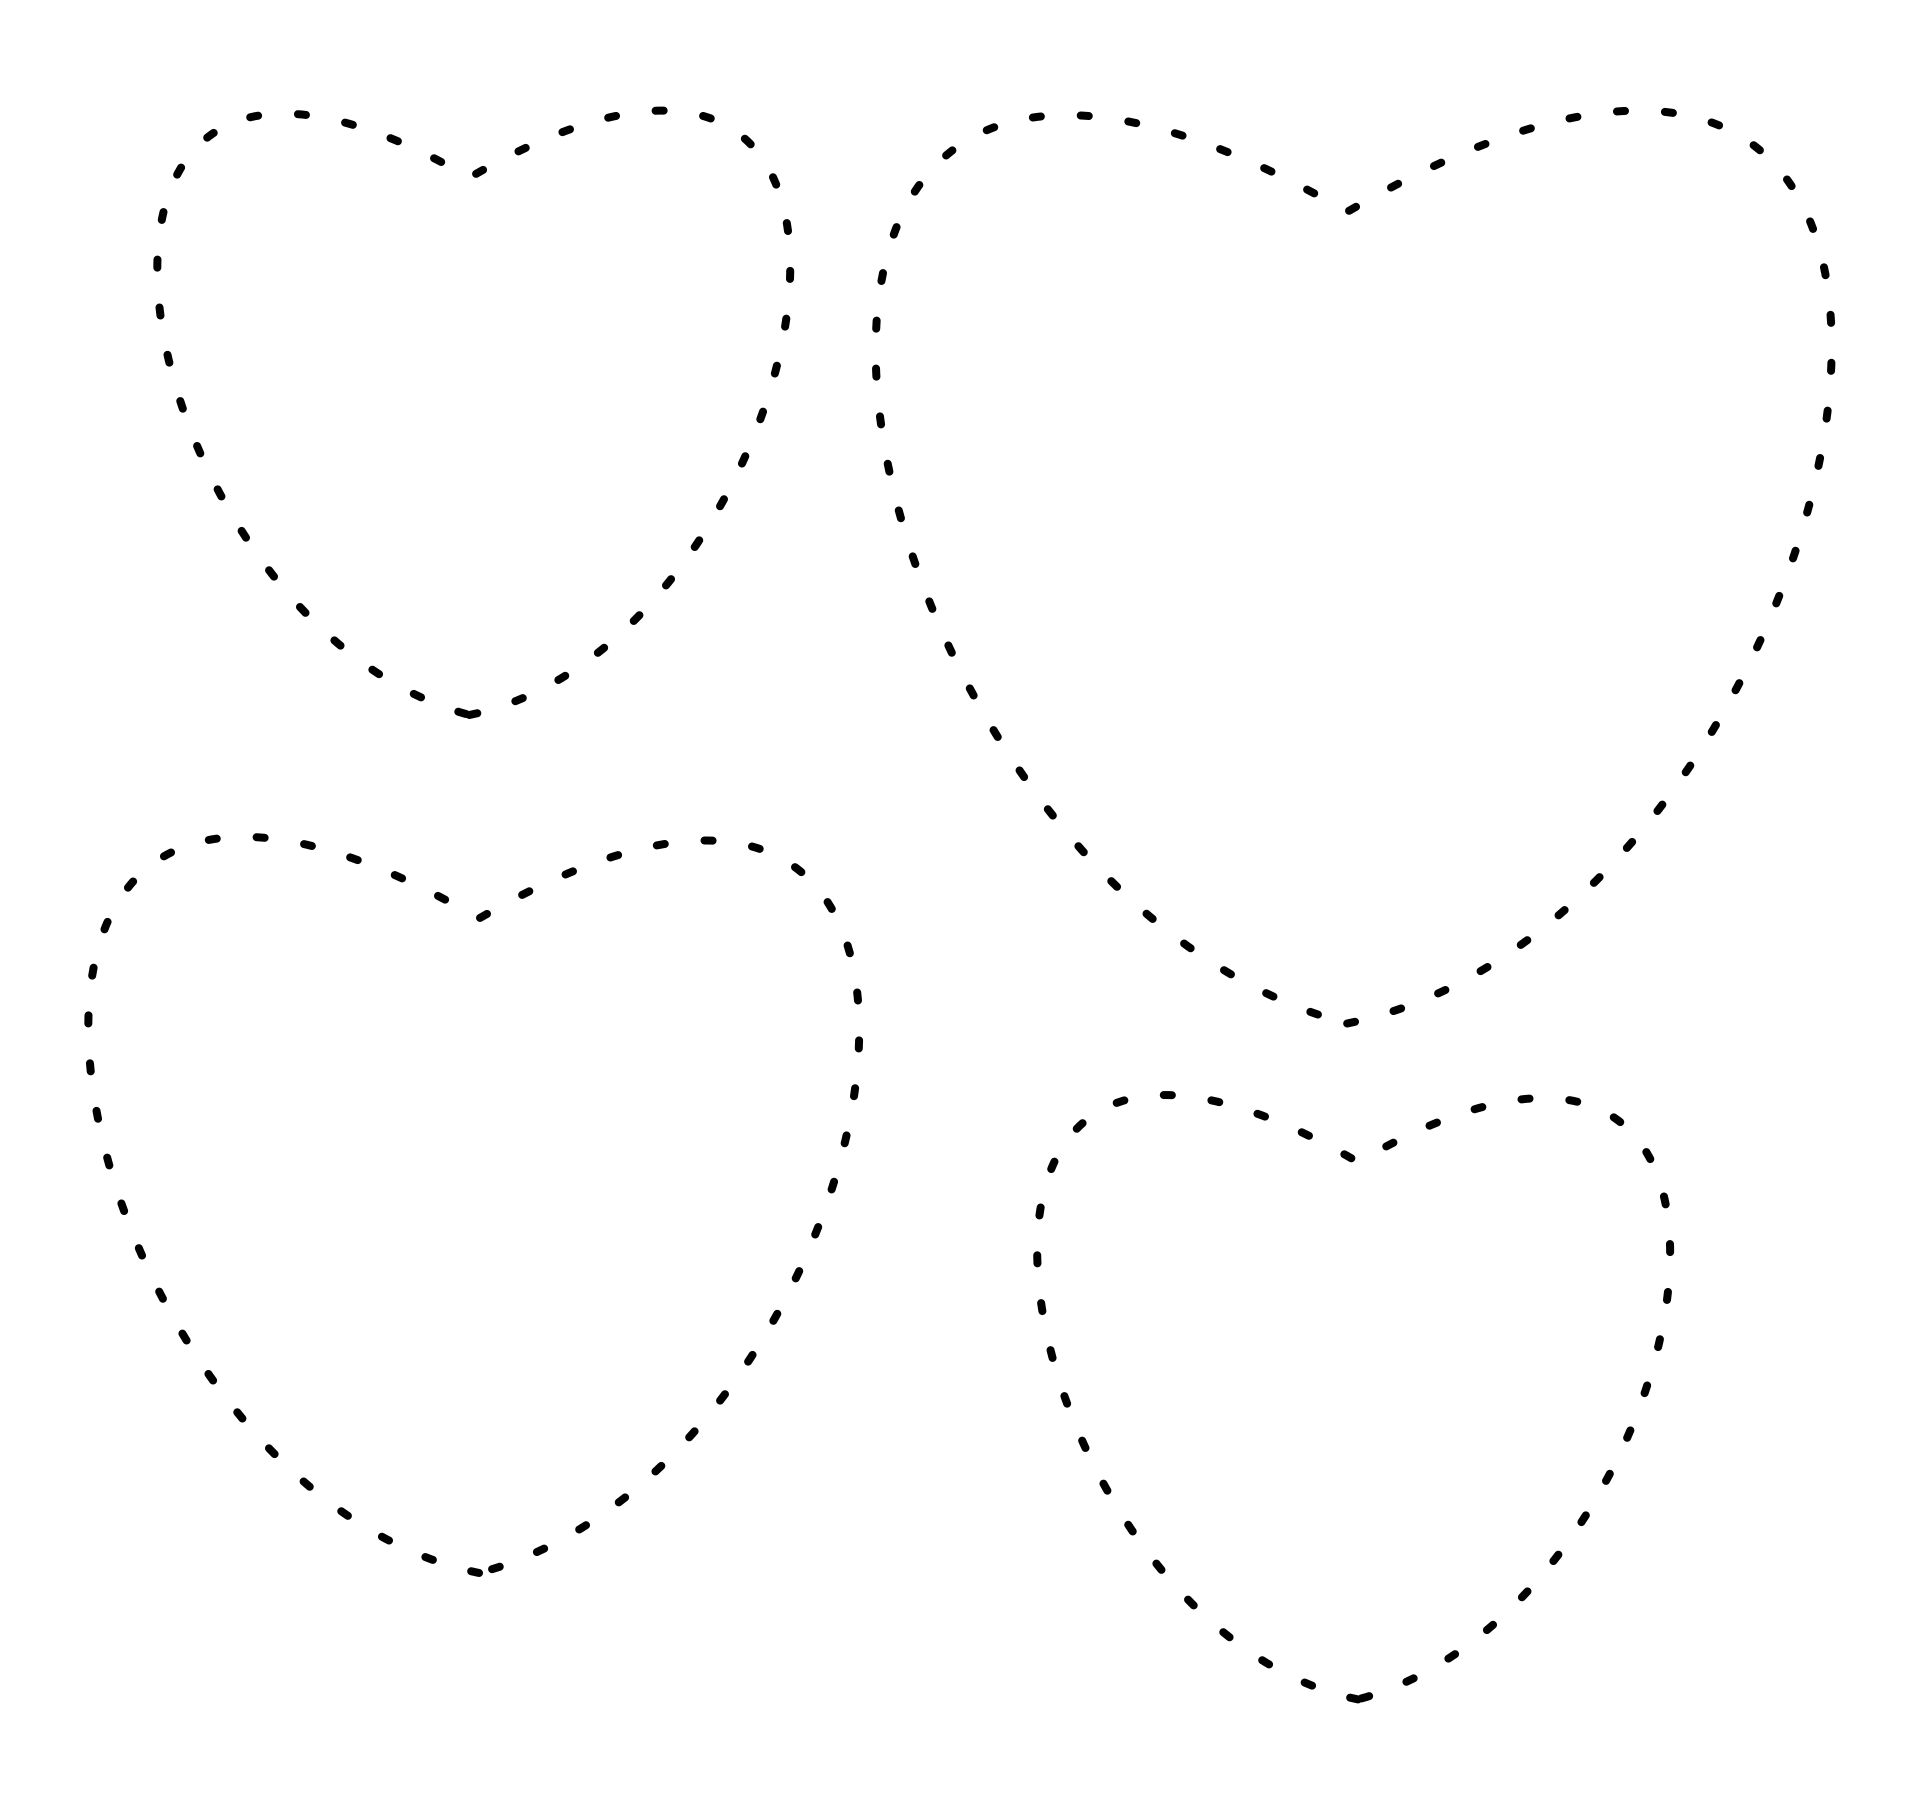 4 Best Images of Printable Kids Tracing Page - Heart ...